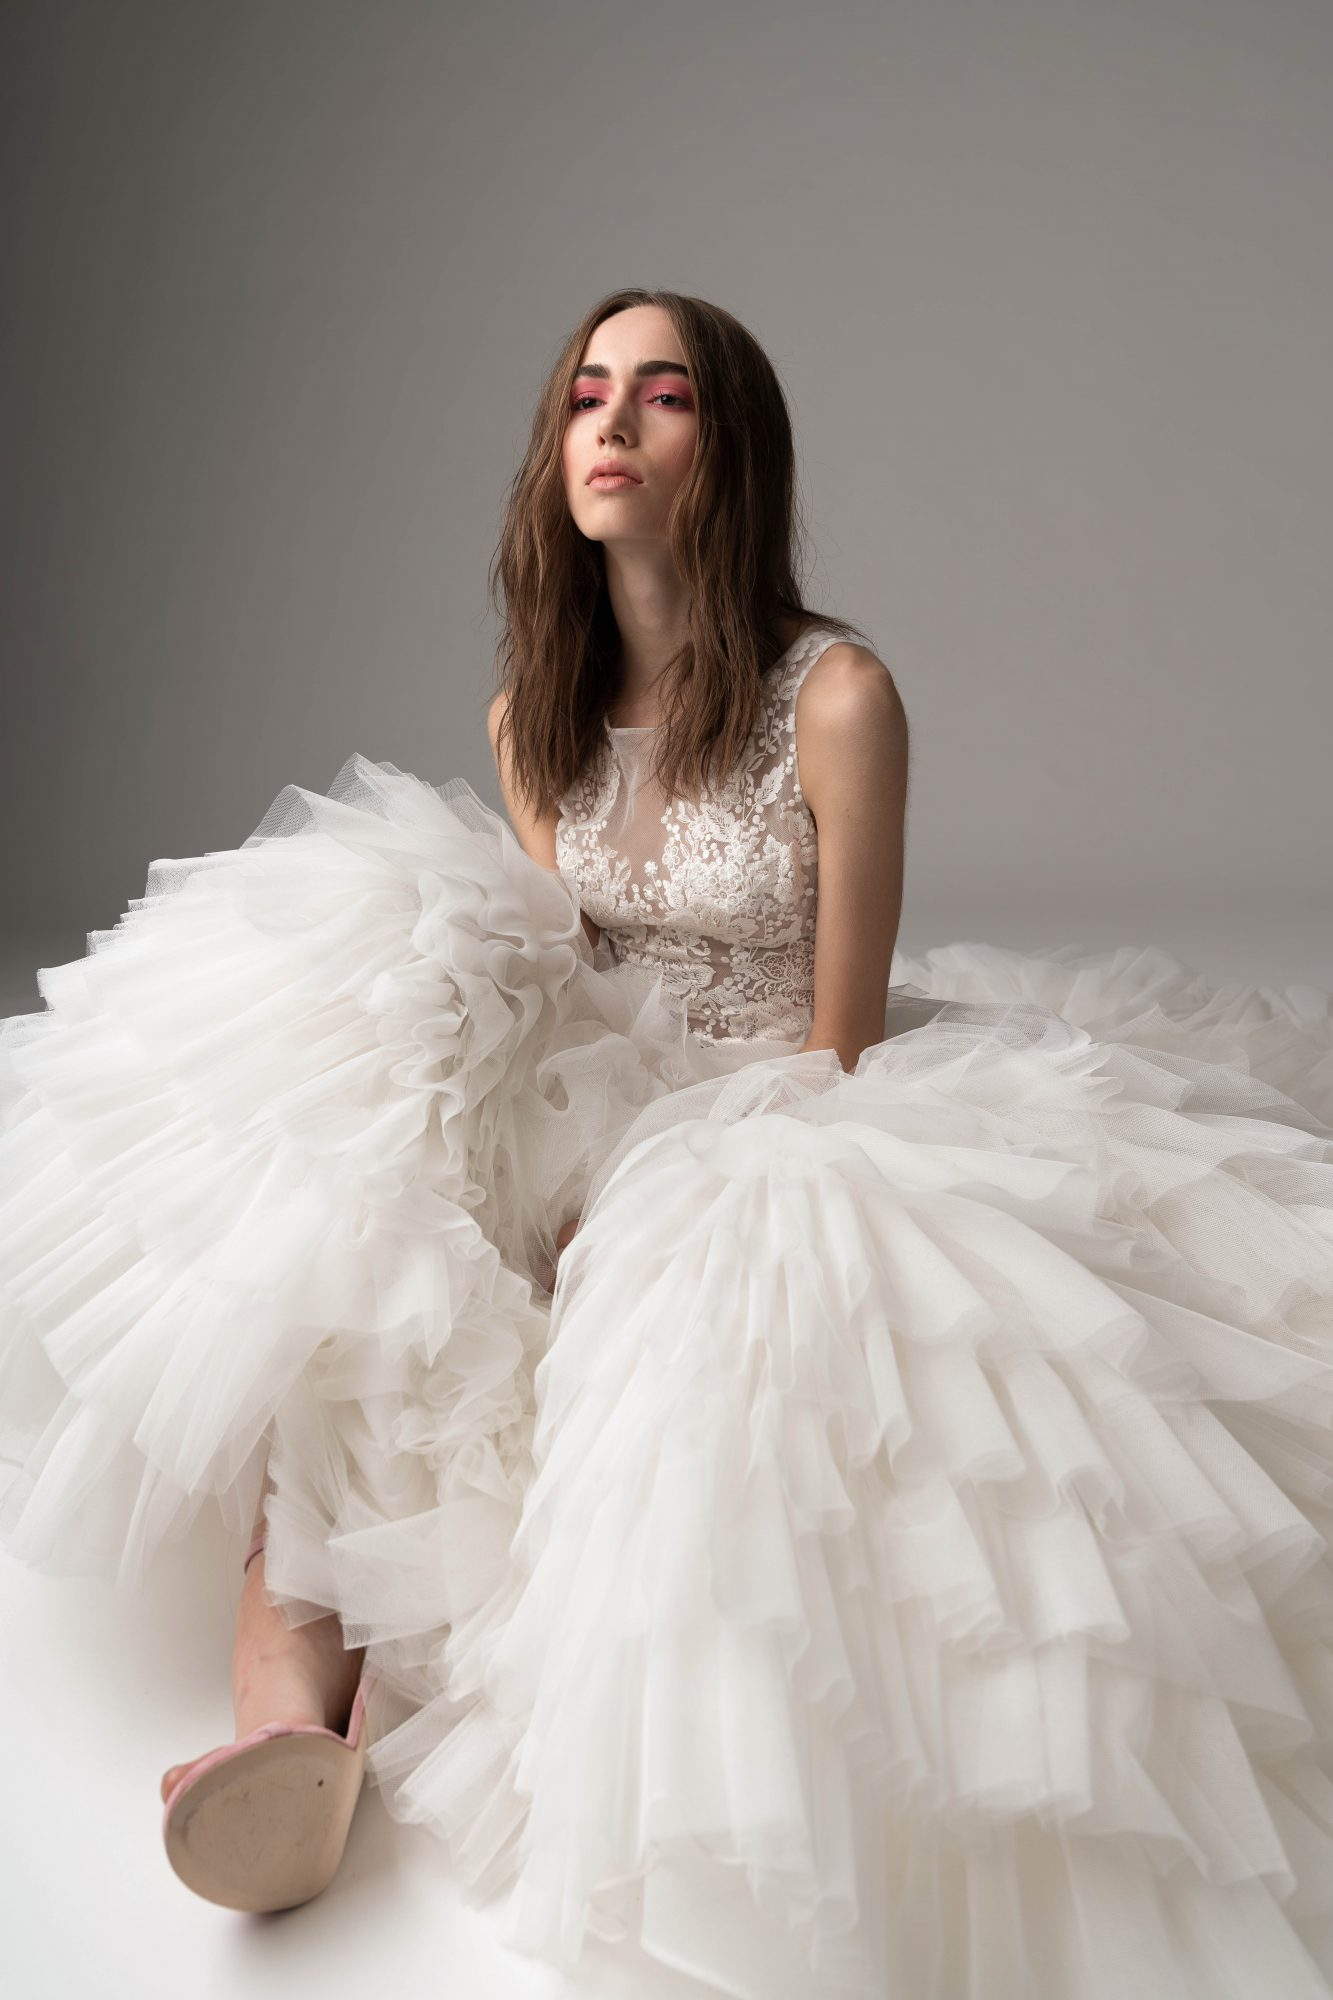 rivini by rita fall 2019 high neck tulle wedding dress